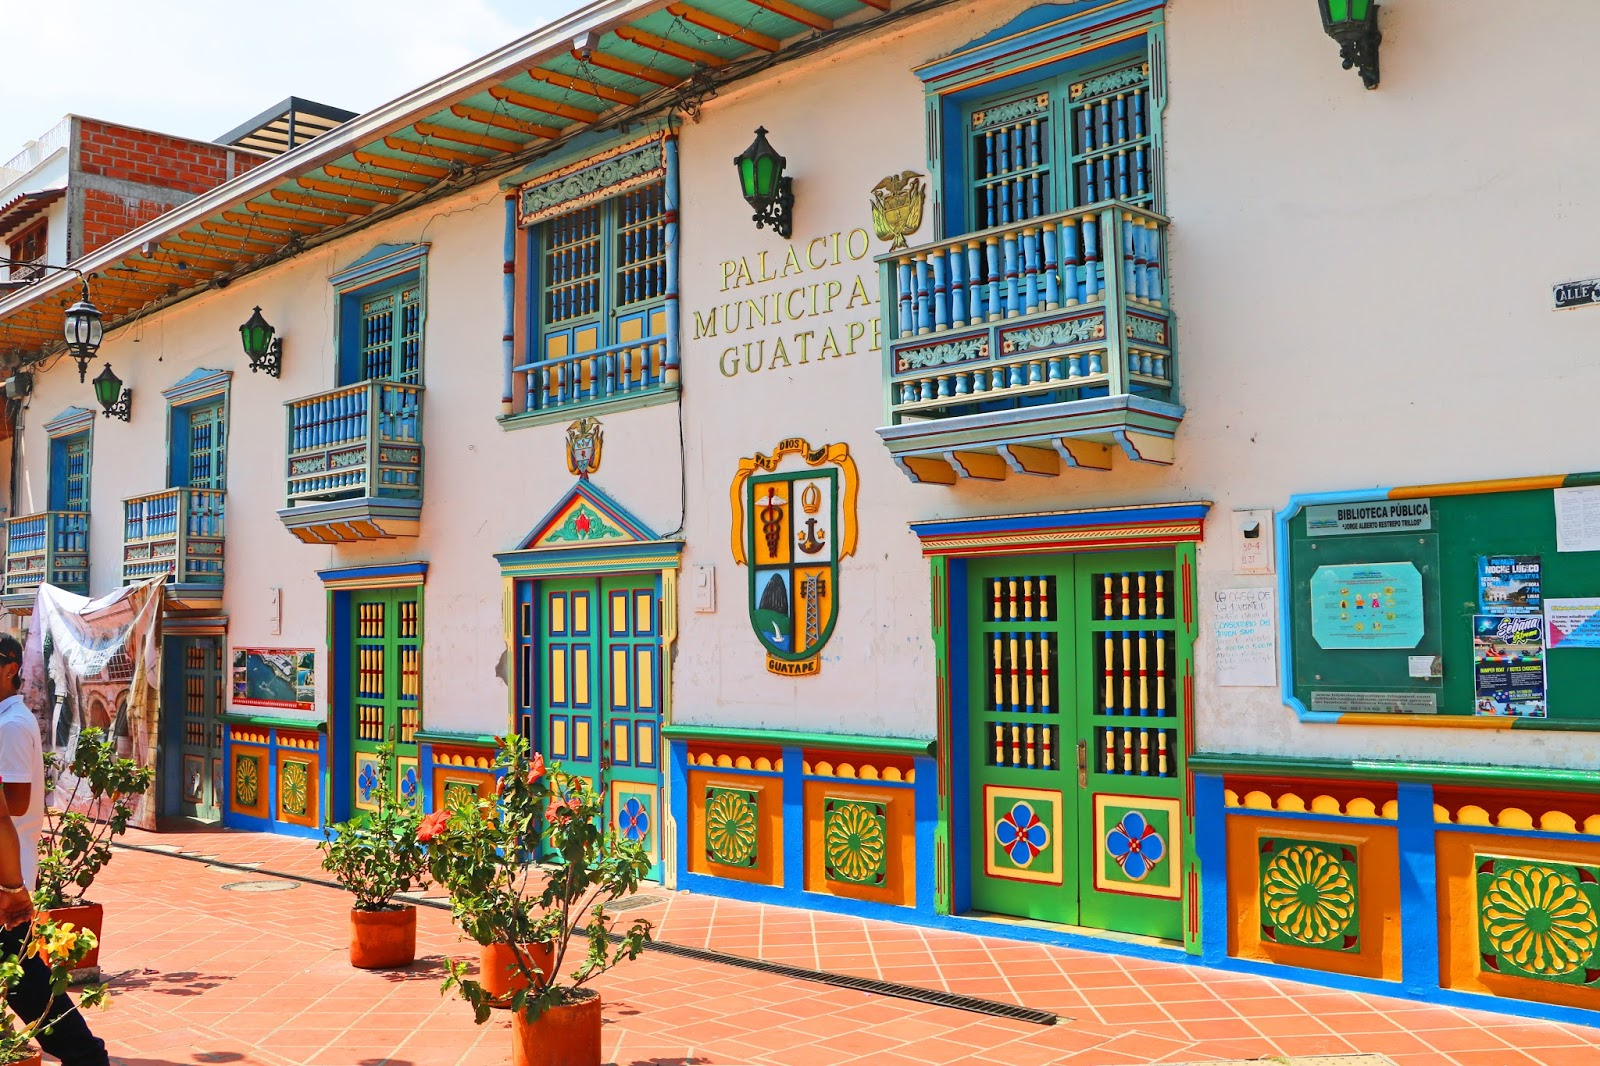 The colorful town of Guatapé is a must see when traveling to Colombia!